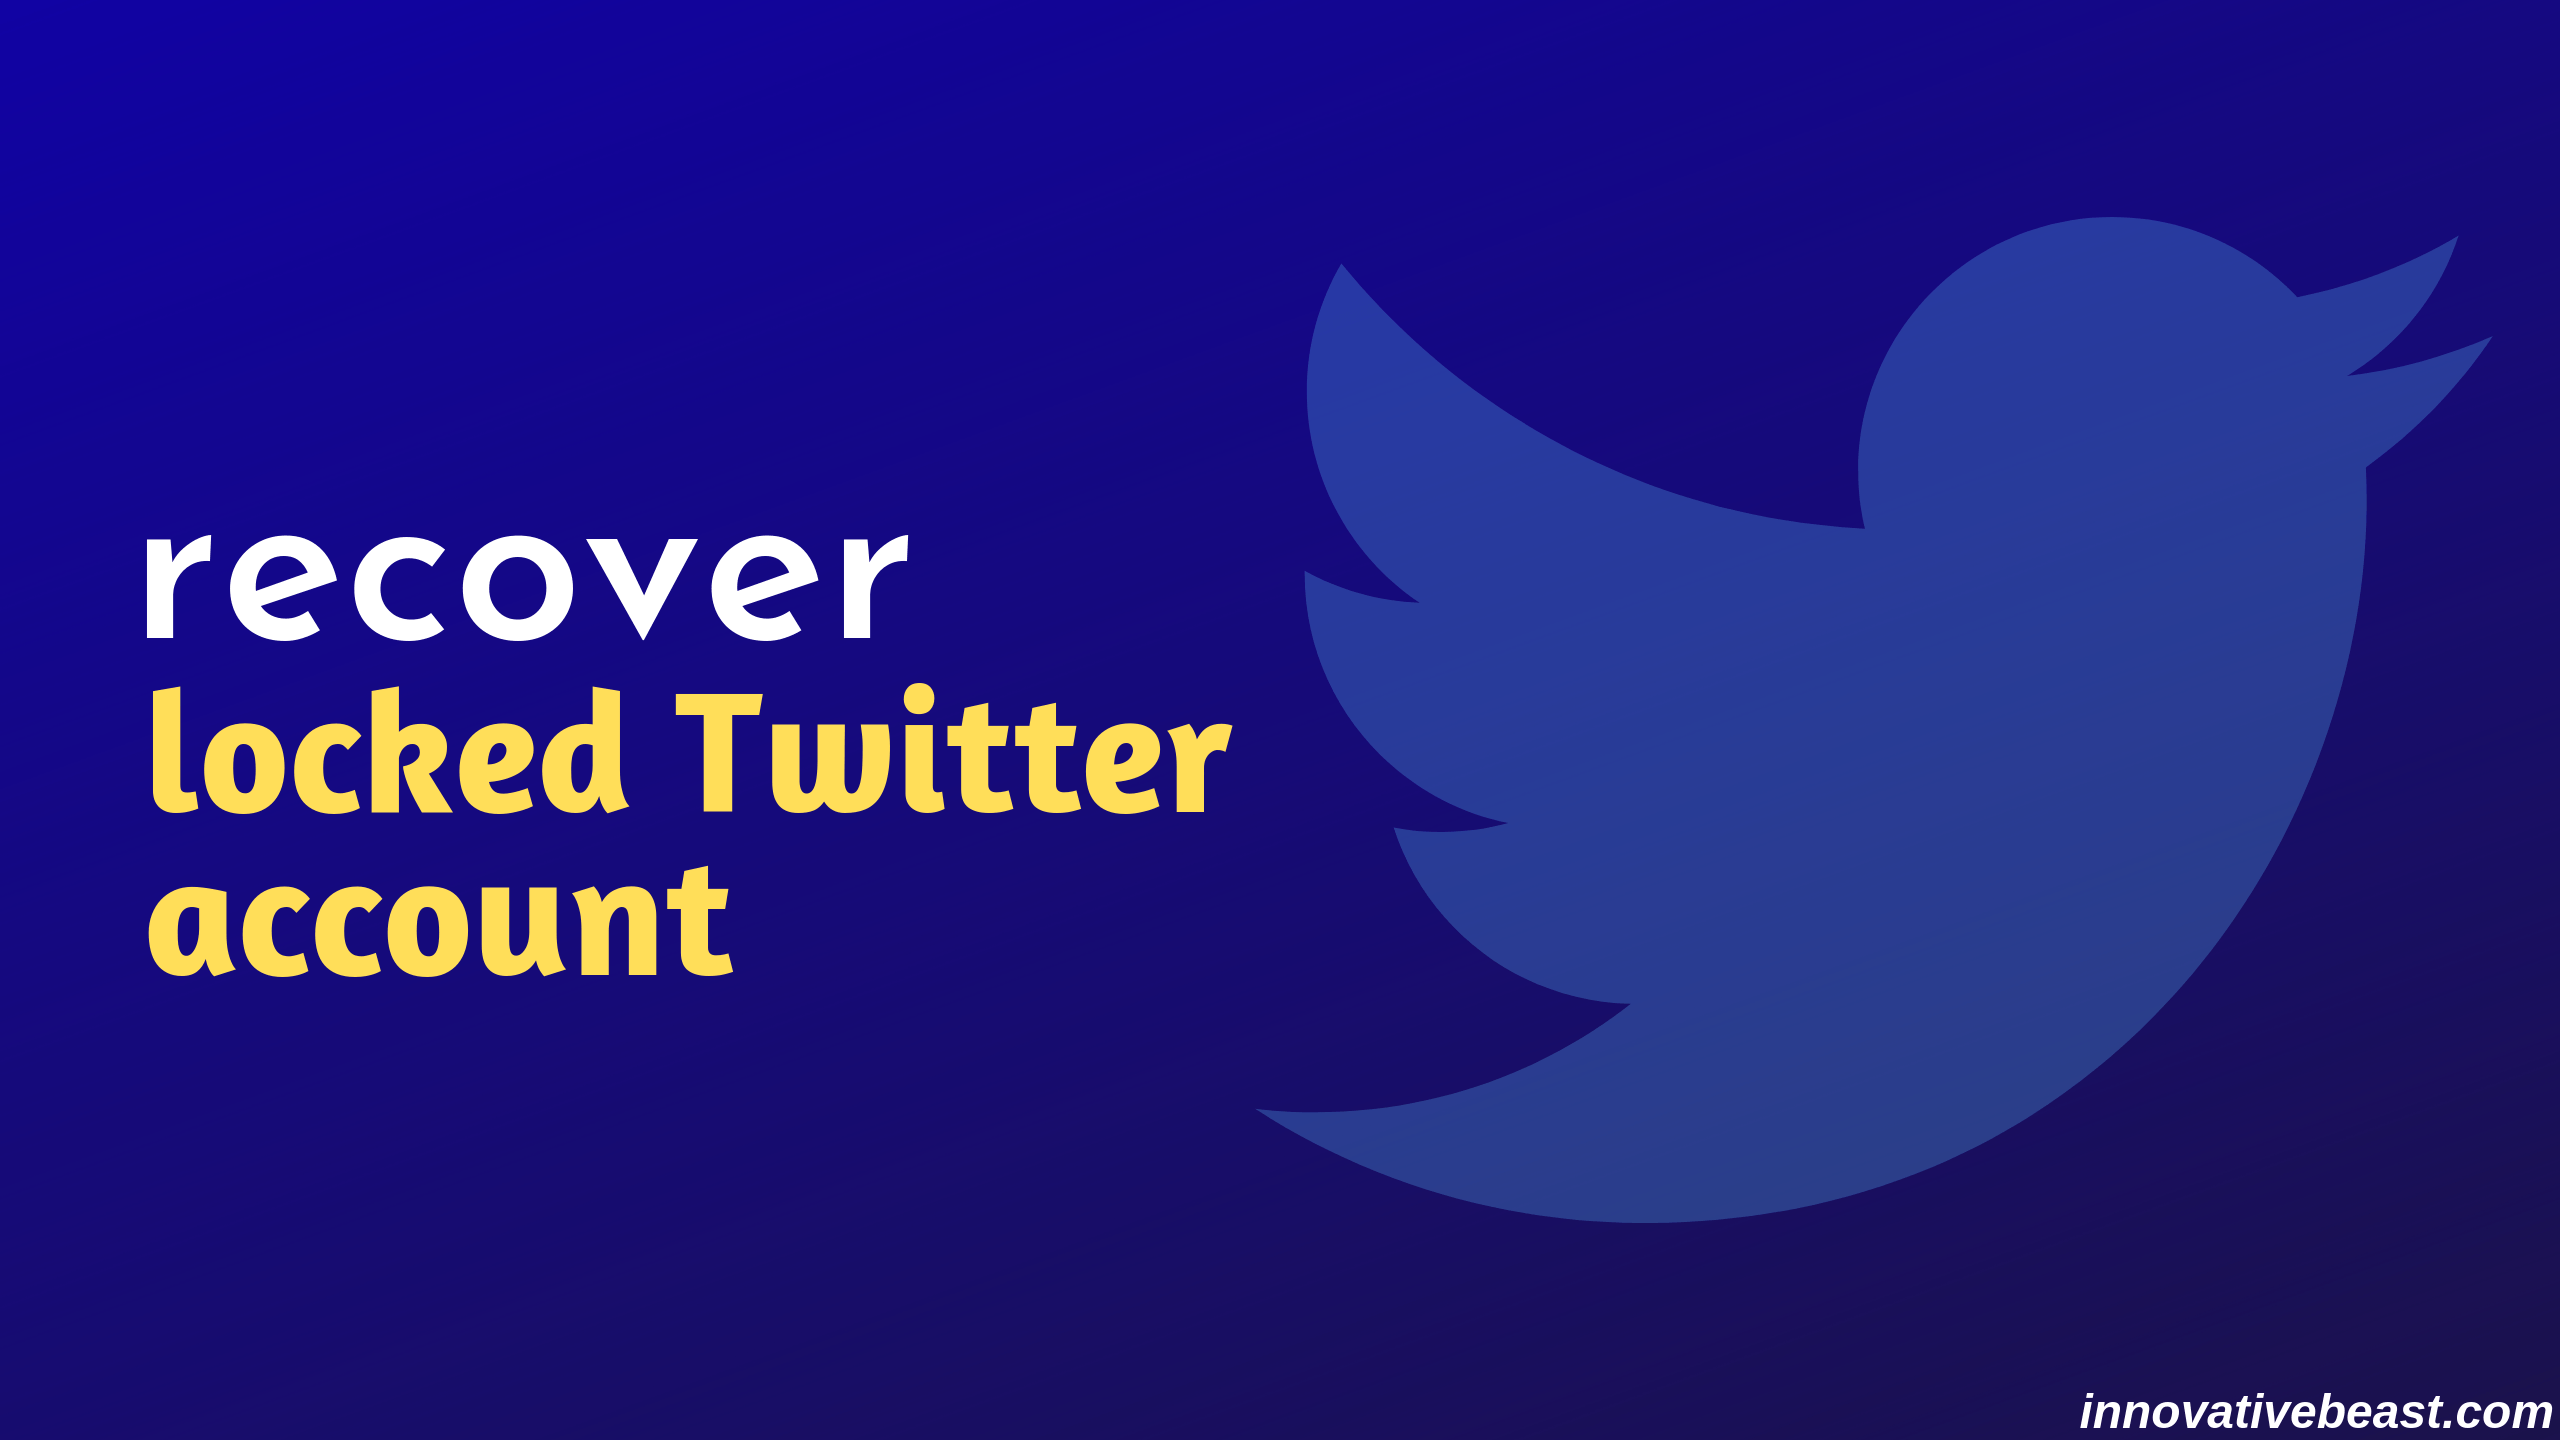 Recover locked Twitter accounts